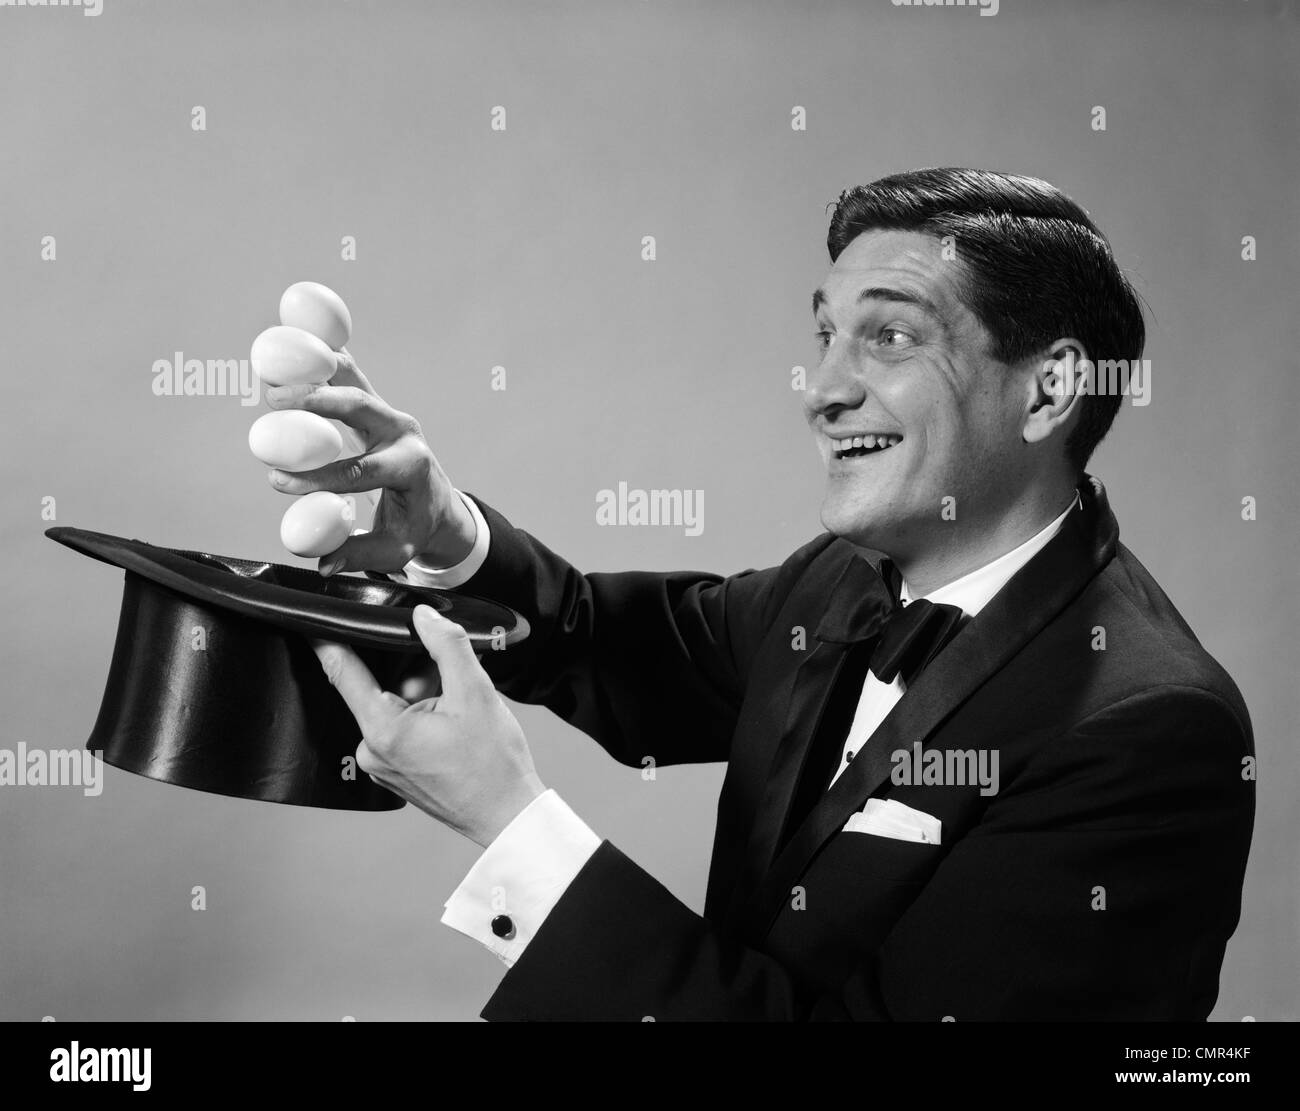 1960s PROFILE MAGICIAN MAN PULLING 4 EGGS OUT OF HAT HOLDING THEM BETWEEN FINGERS - Stock Image